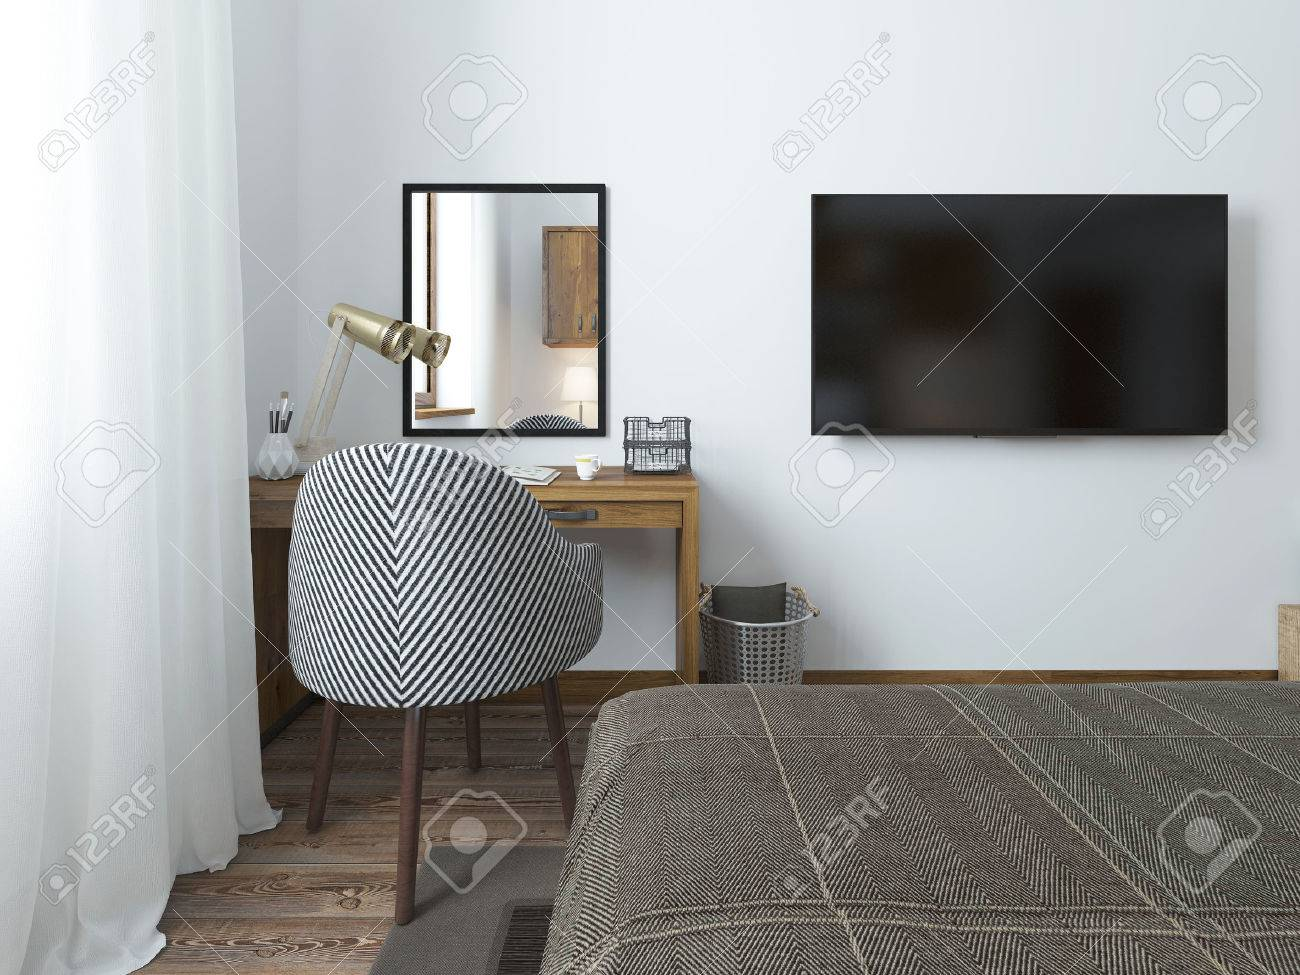 style wall if shocking desk tv the uncategorized ideas it modern us trend uk looks pict all units imgid love mounted of and unit as